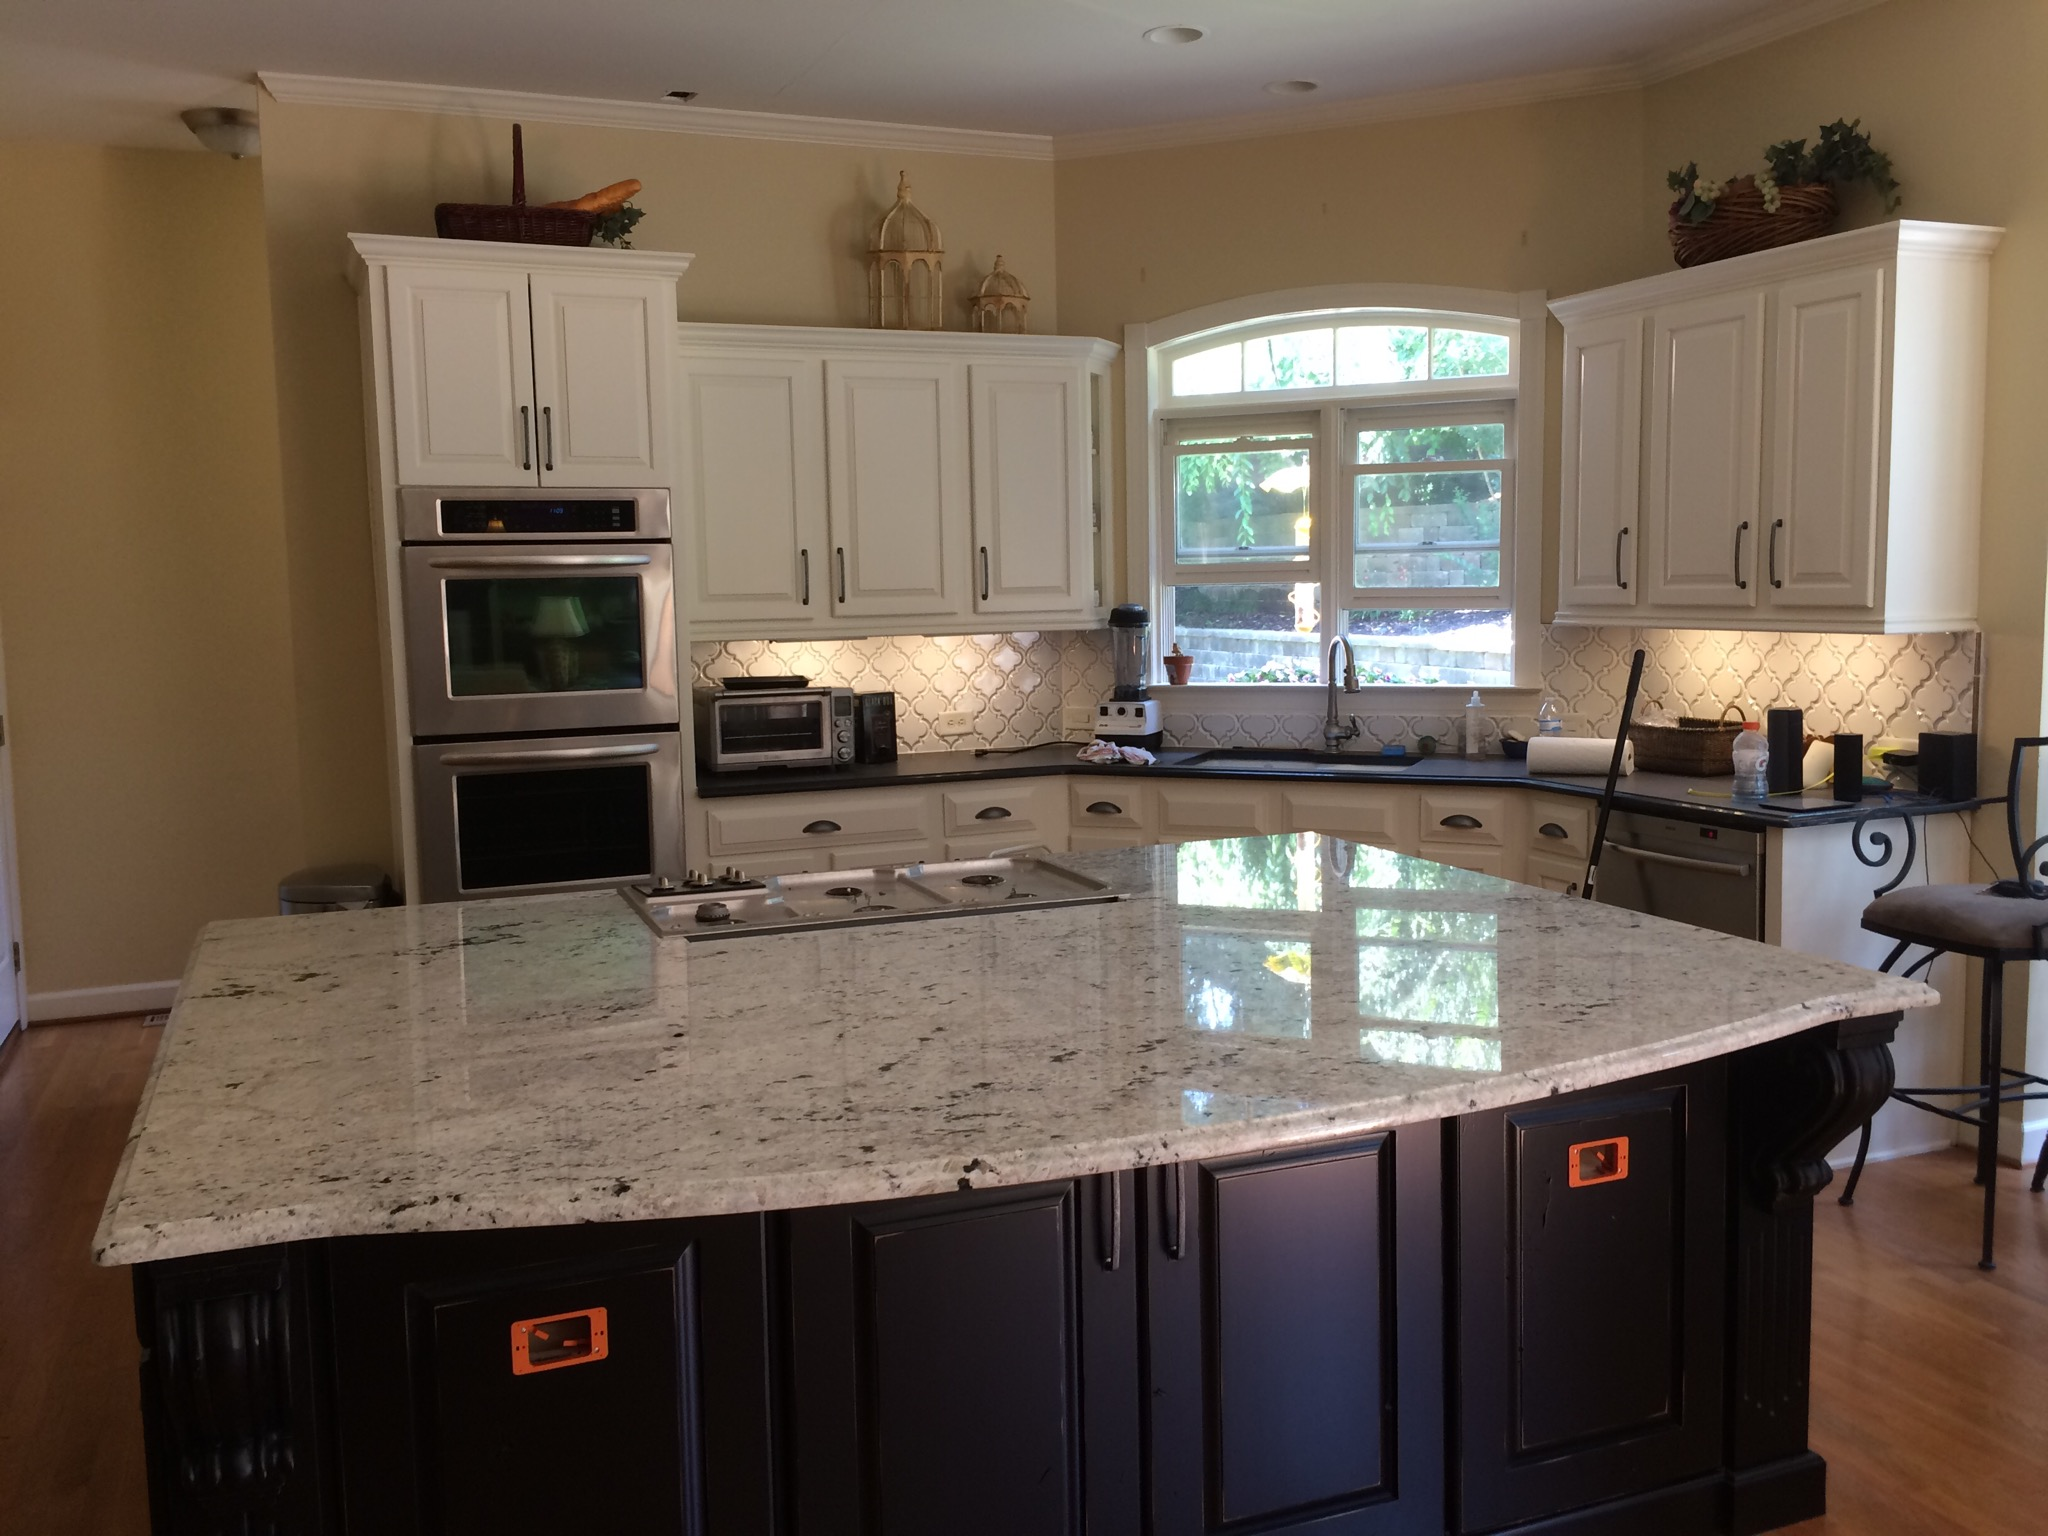 you inc natural stone afford jv for that in look specialize a counter of and your home the fabrication jvgranite countertops are can price best granite tops elegance we countertop amy picture at